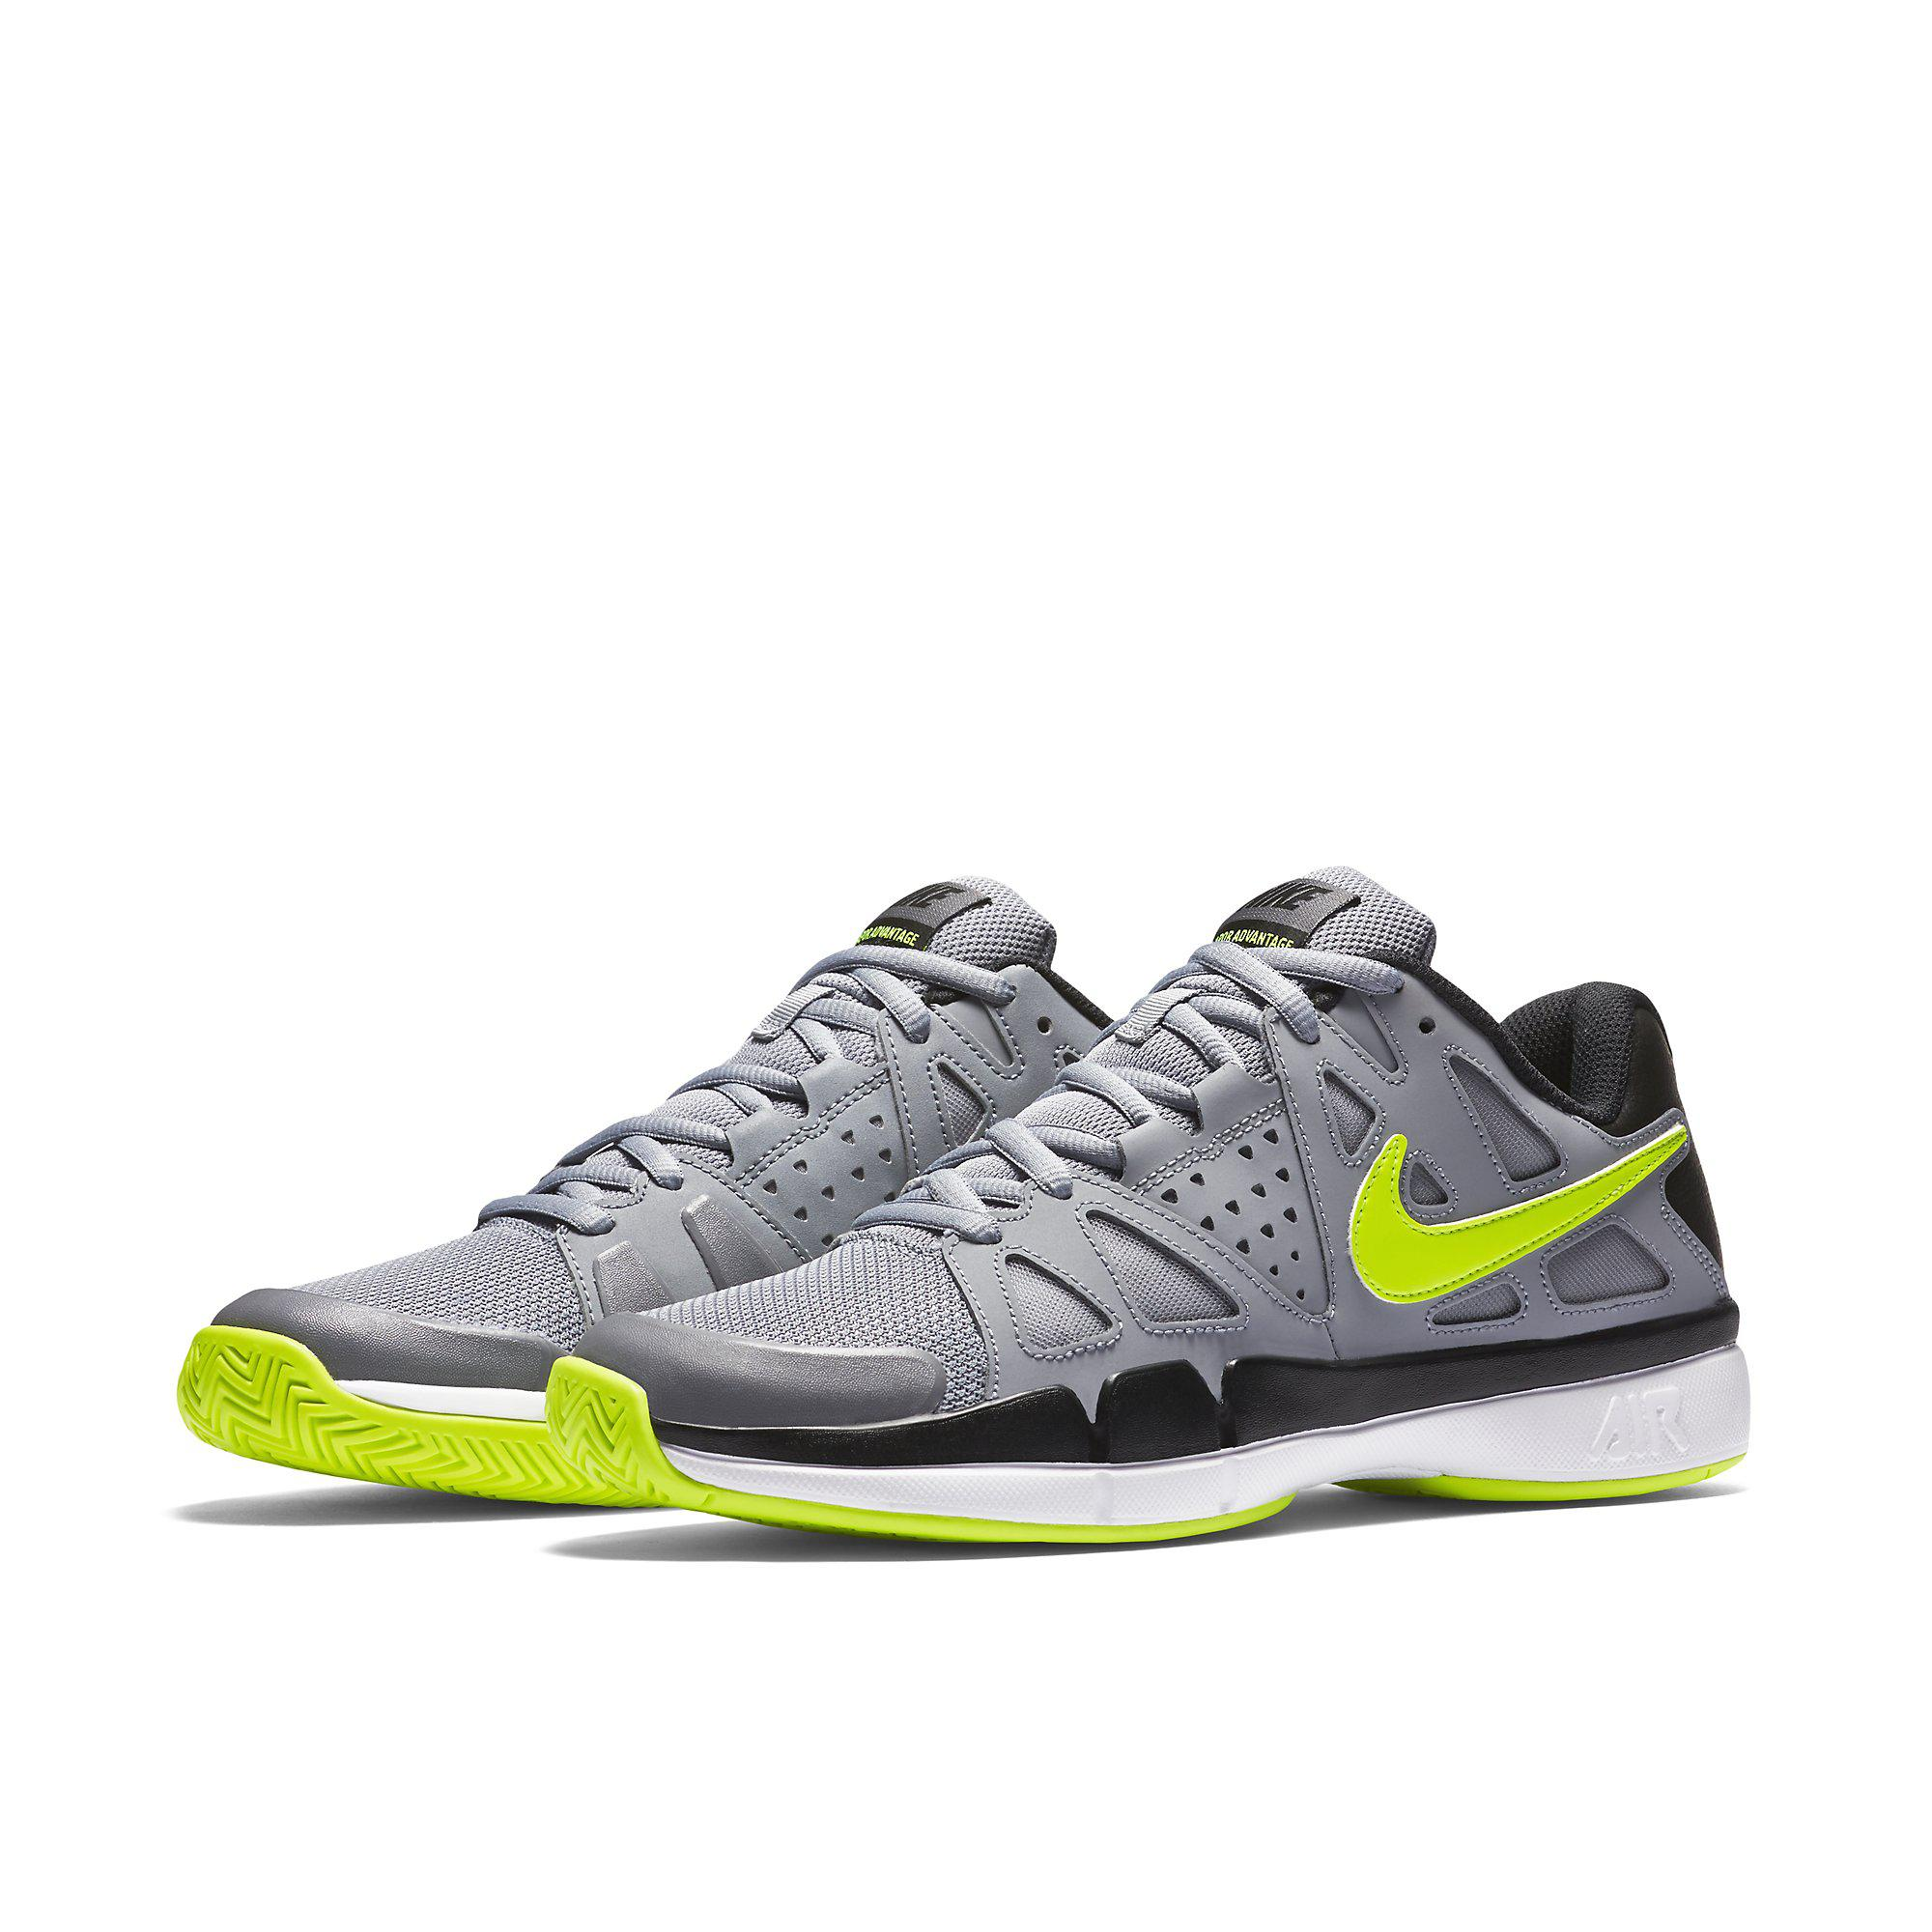 nike mens air vapor advantage tennis shoes stealth grey